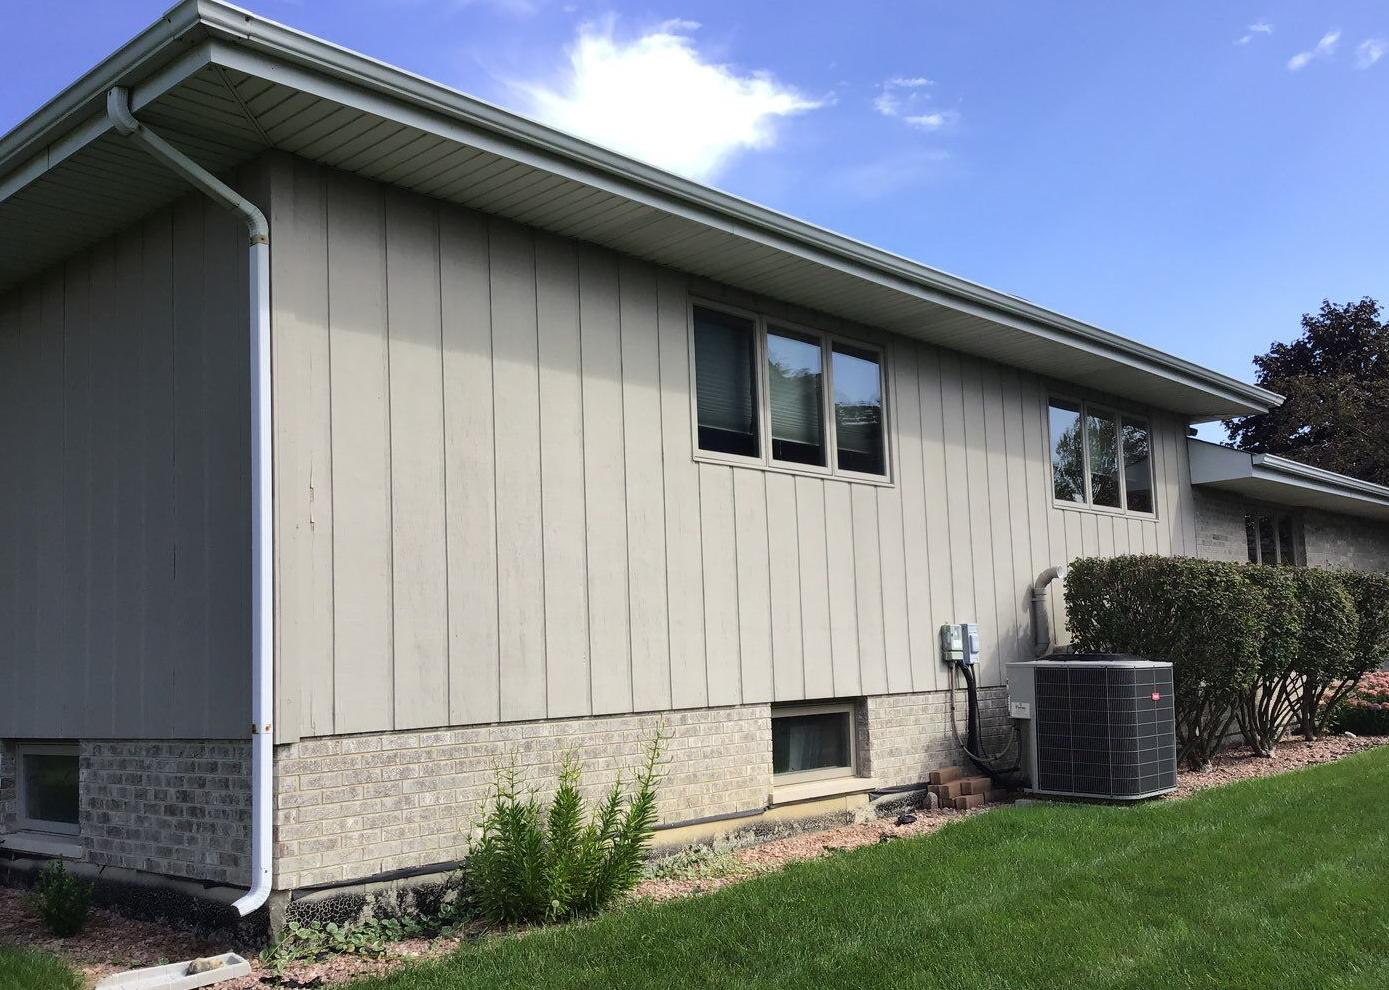 Vertical to horizontal Siding Replacement in Lemont - Before Photo